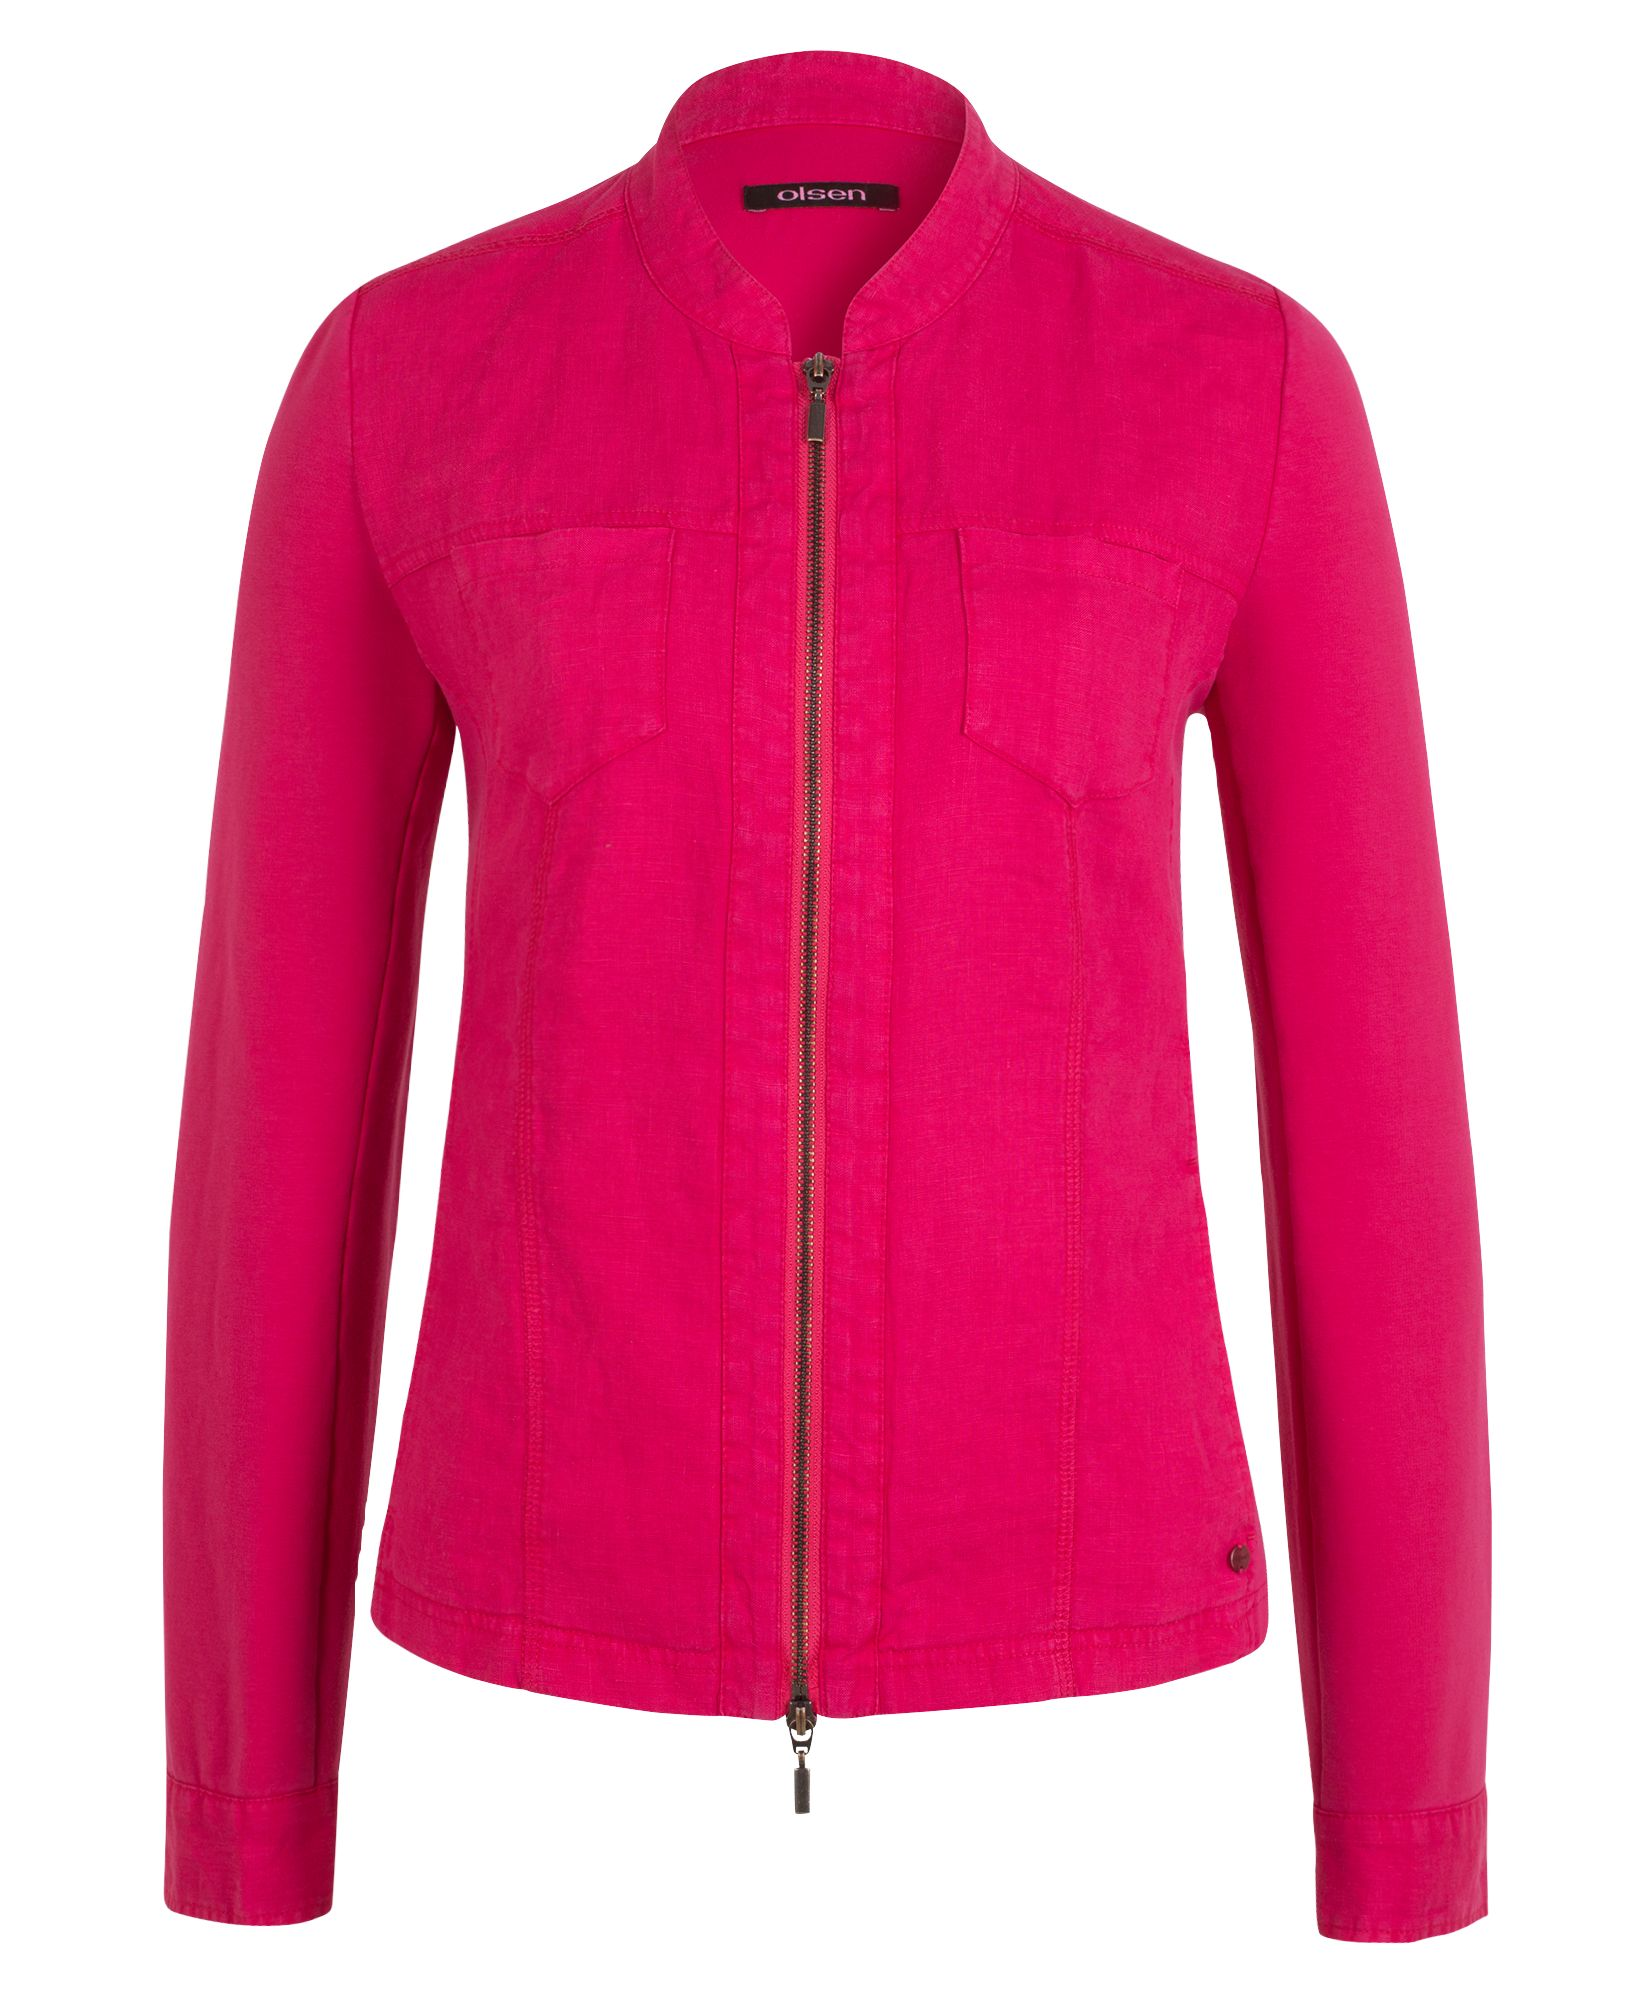 Olsen Sweat Jacket - Tropic Pink, Pink